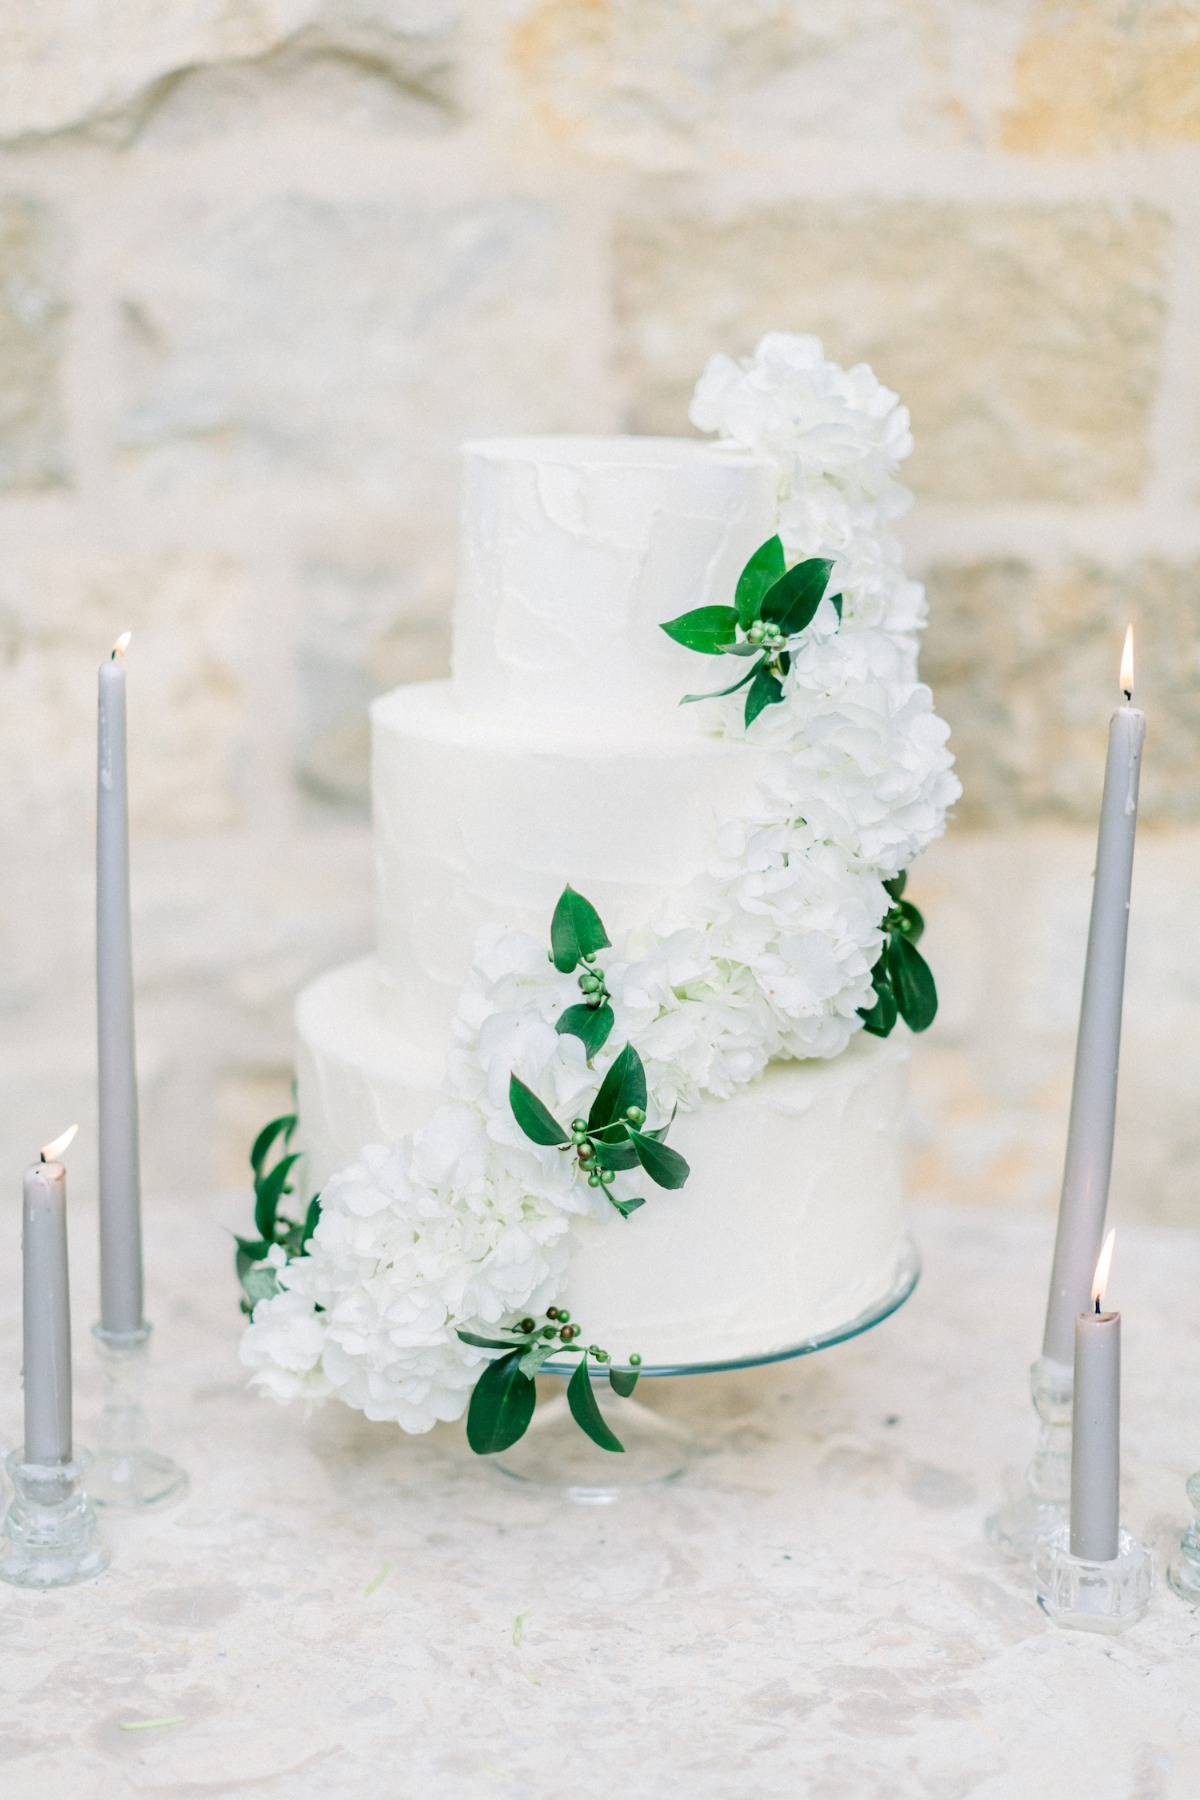 White and green wedding cake by Crush cakes